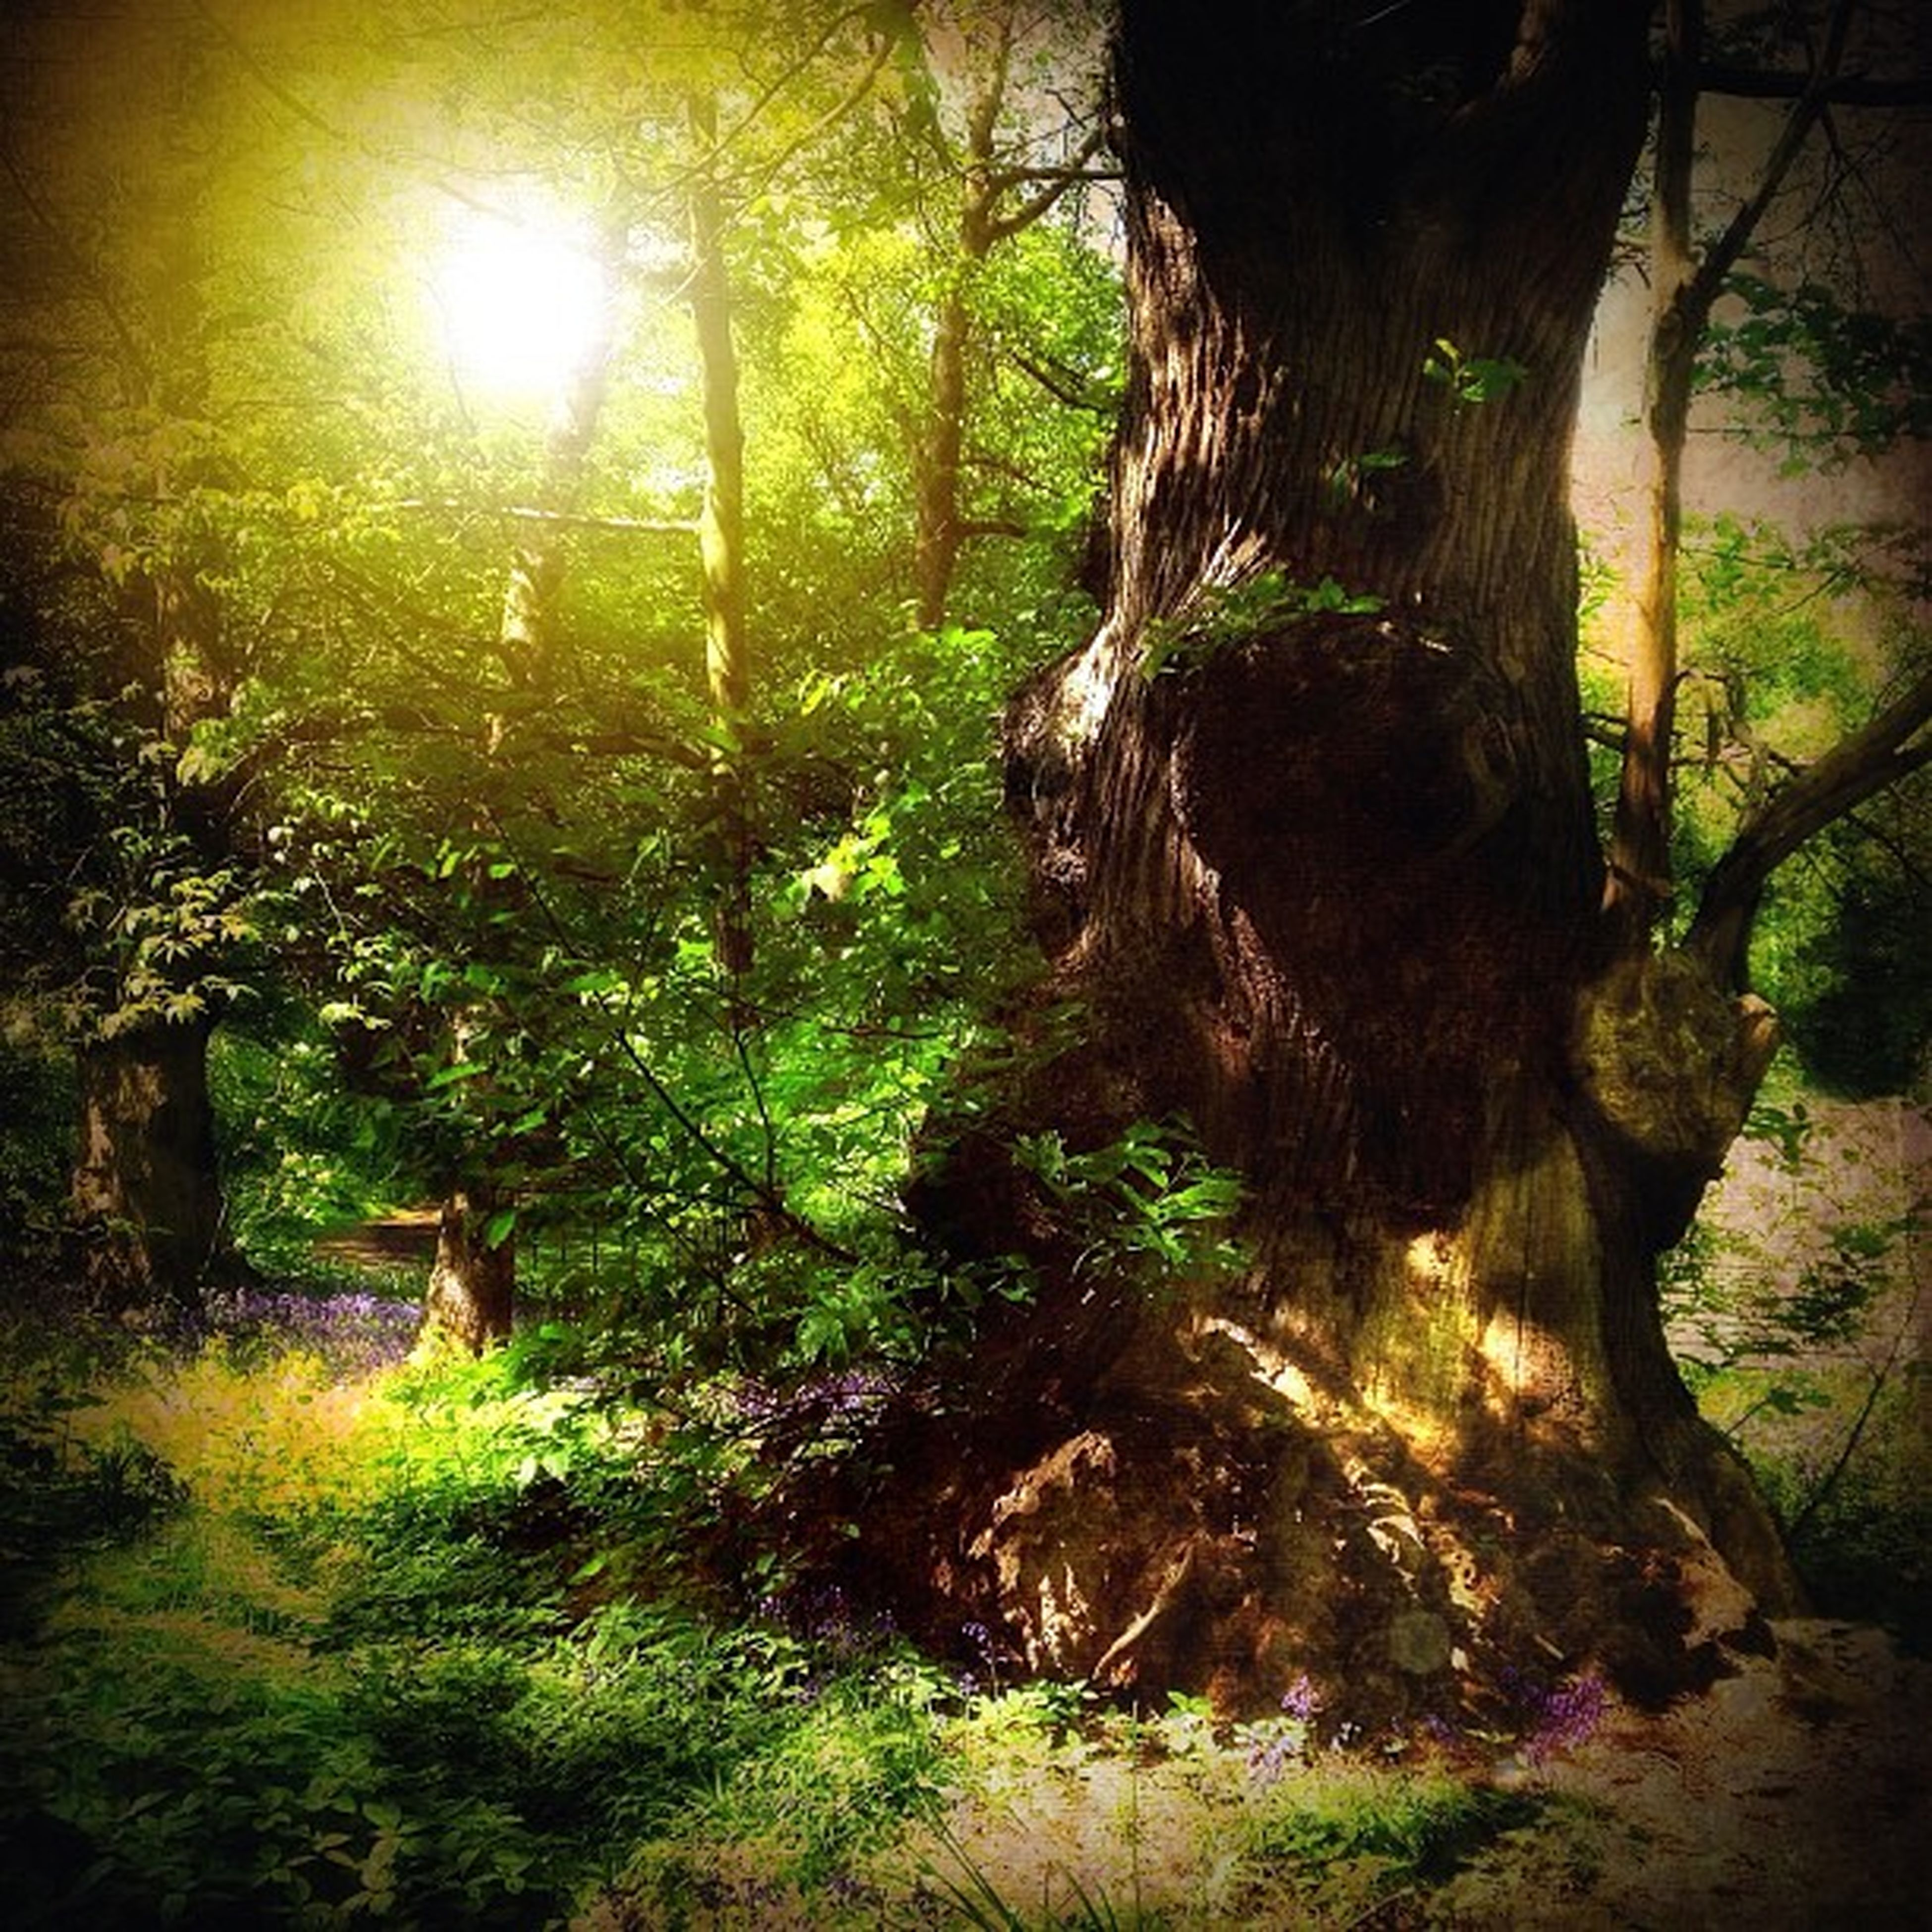 tree, tranquility, forest, growth, nature, tree trunk, tranquil scene, sunlight, beauty in nature, green color, woodland, sun, scenics, branch, sunbeam, lens flare, the way forward, landscape, non-urban scene, footpath